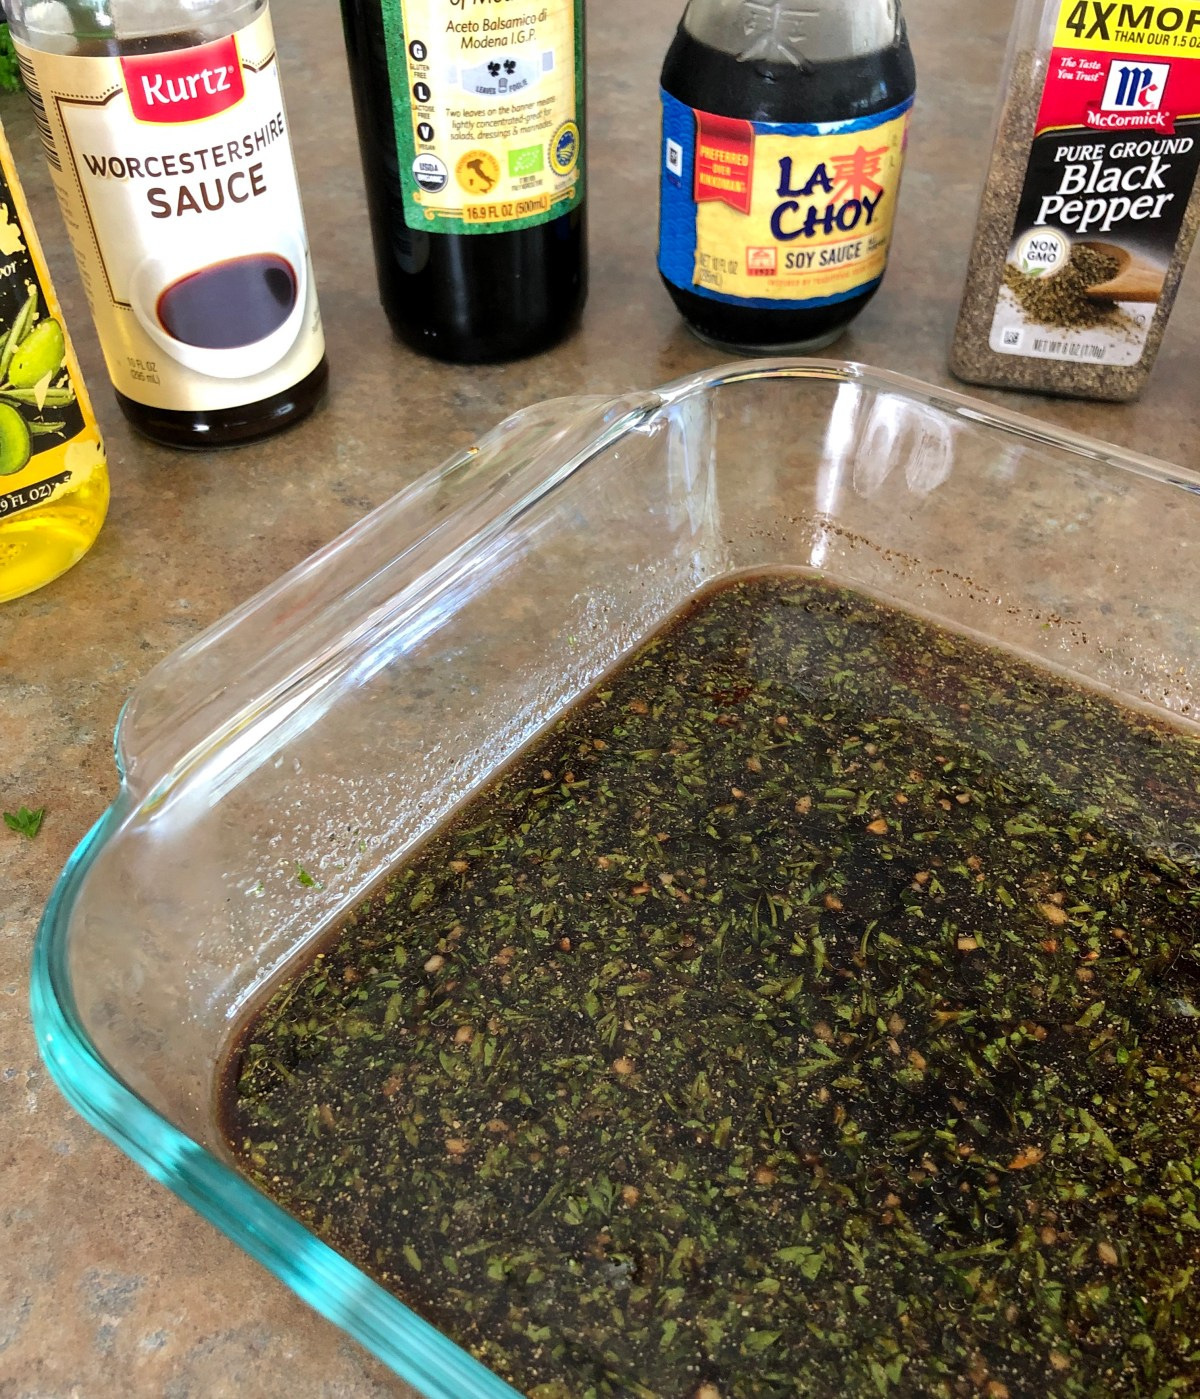 Worcestershire sauce, fresh parsley, balsamic vinegar, soy sauce, olive oil, minced garlic, black pepper and cayenne pepper in a shallow dish.